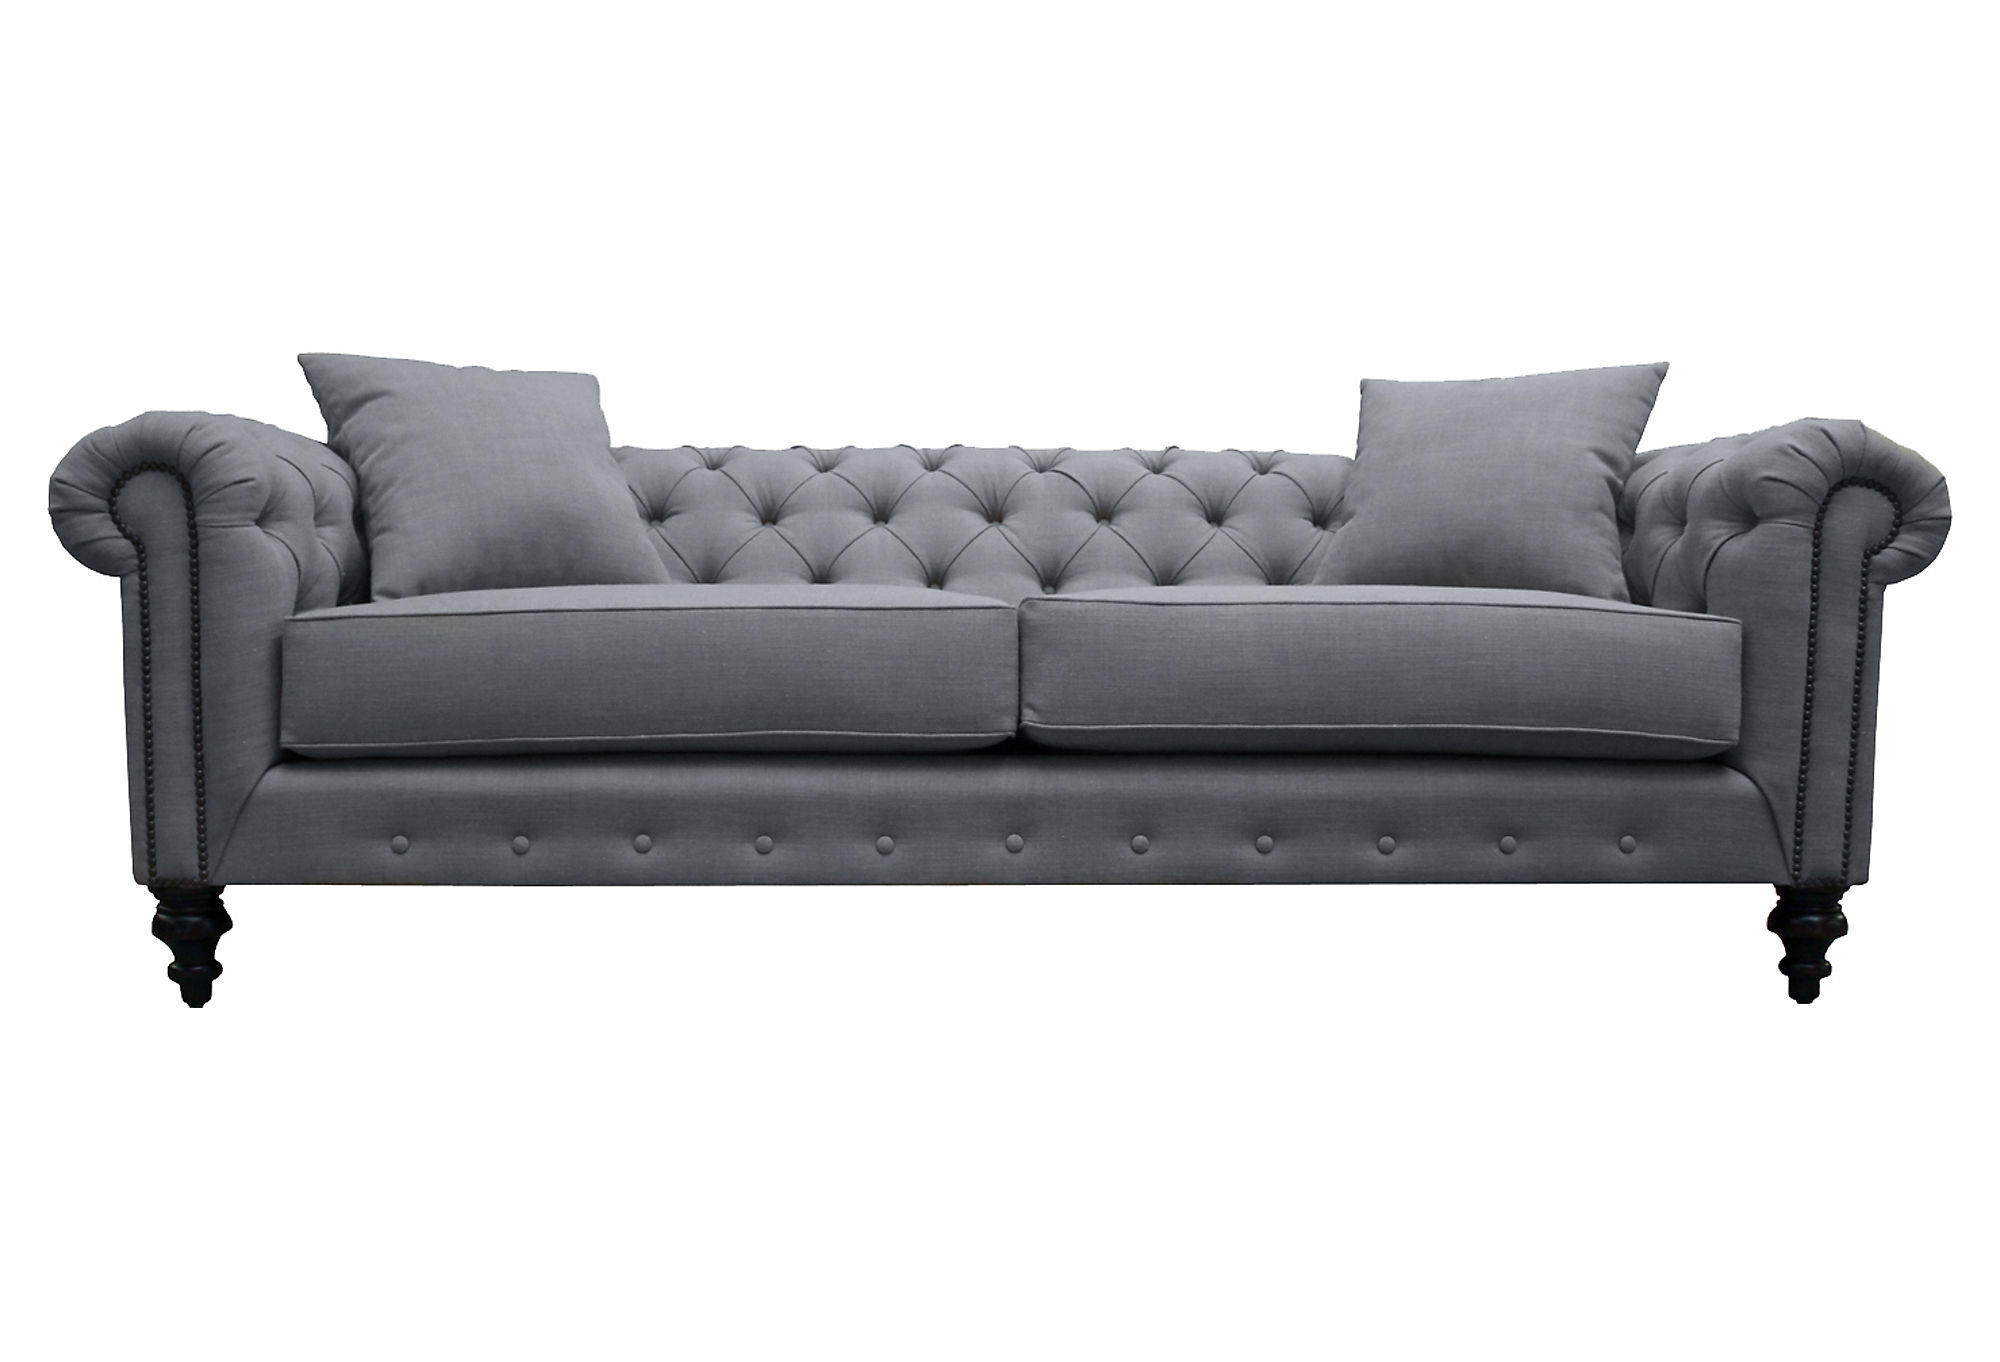 maria 90 tufted chesterfield sofa gray from one kings lane. Black Bedroom Furniture Sets. Home Design Ideas